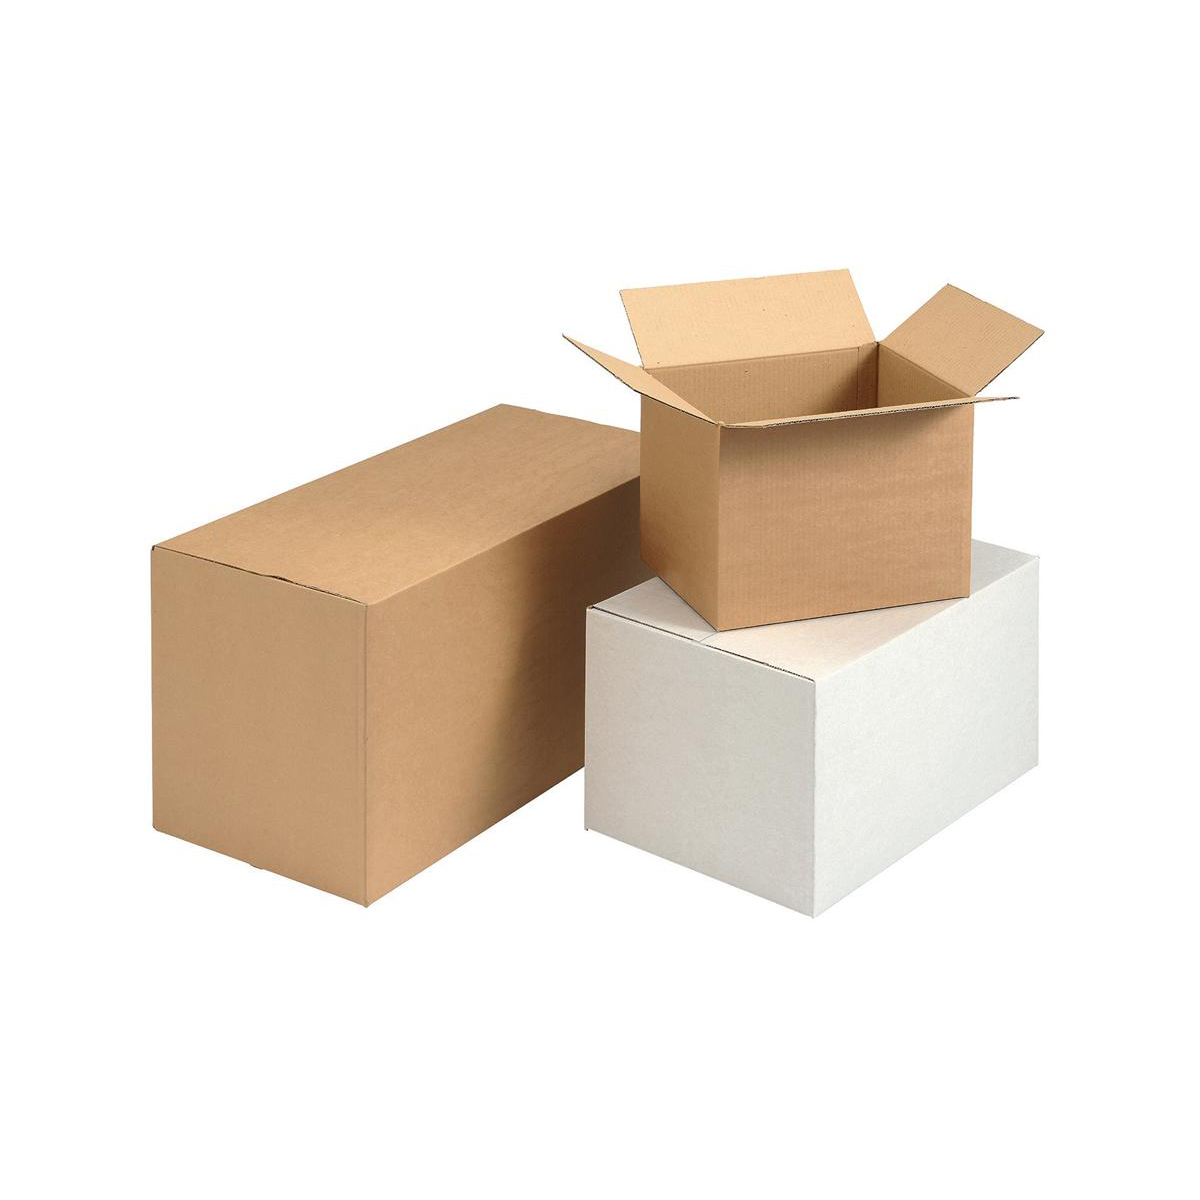 Packing Carton Single Wall Strong Flat Packed W635xD305xH330mm Brown [Pack 10]